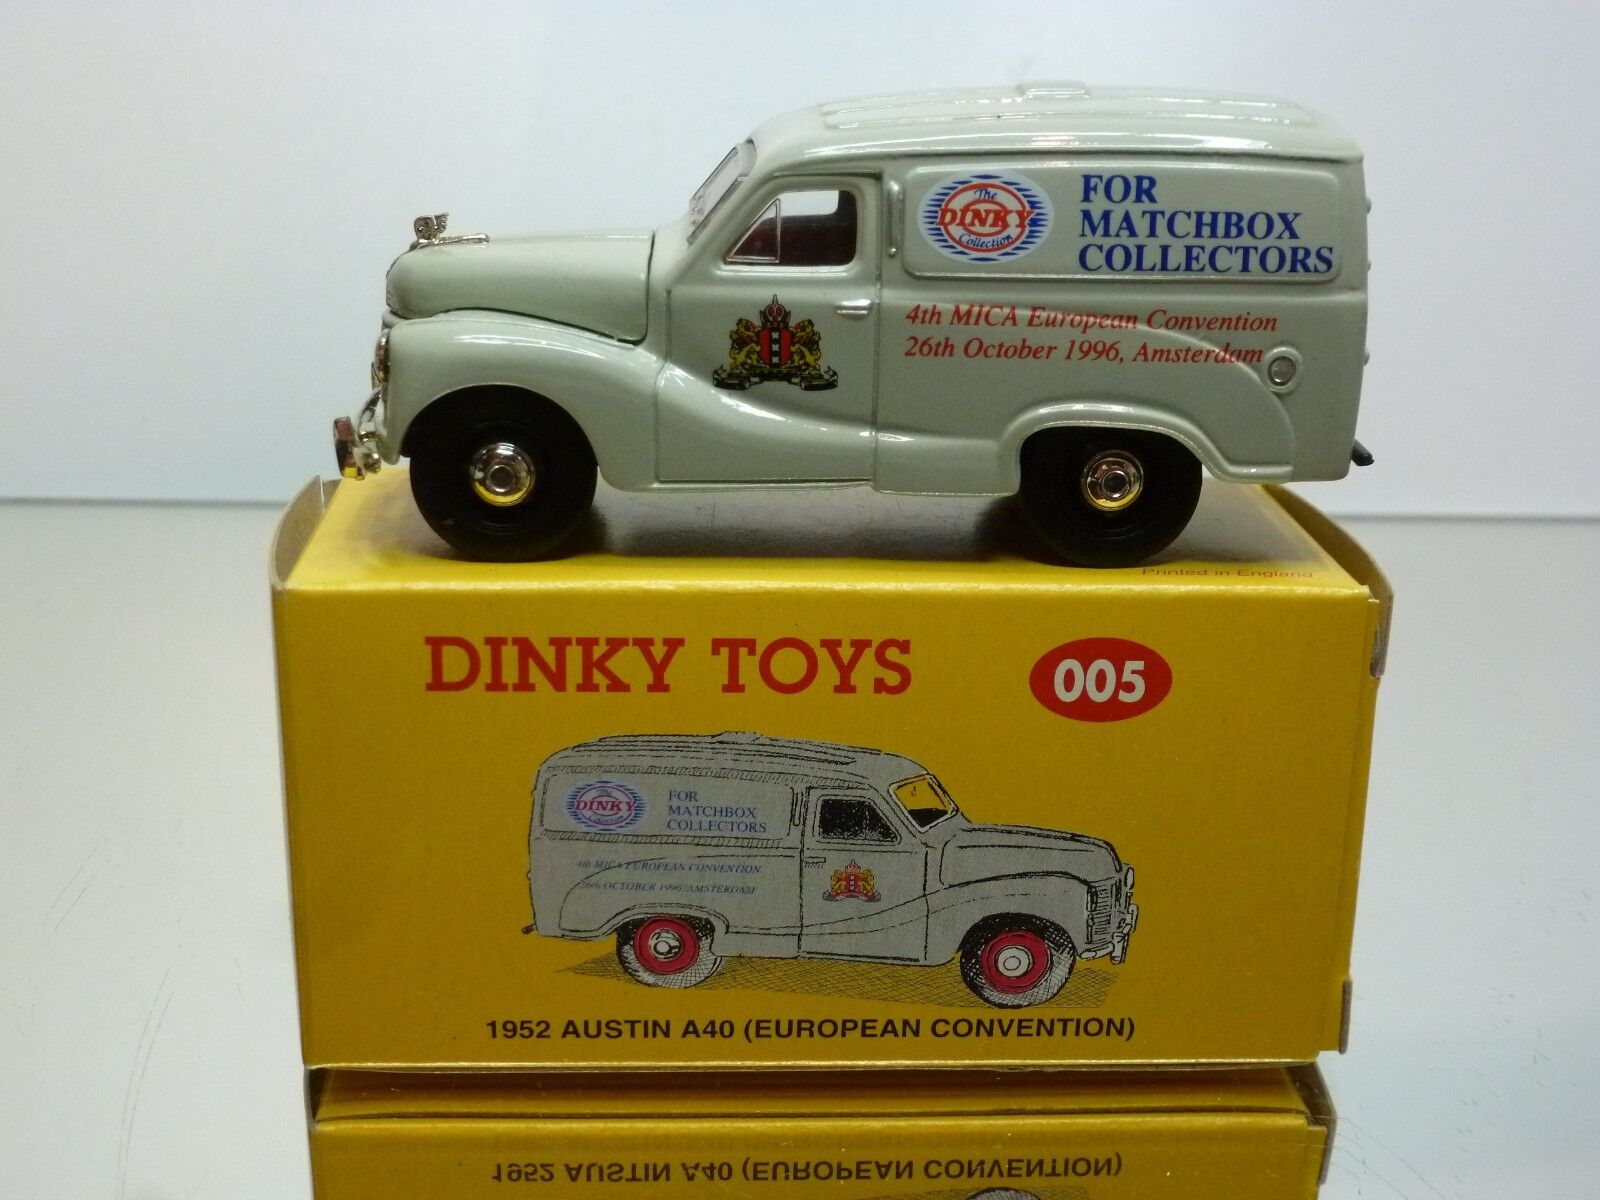 DINKY TOYS CODE 2 MODELS 005 AUSTIN A40 '52 MICA CONVENTION 1:43 - EXCELLENT IB